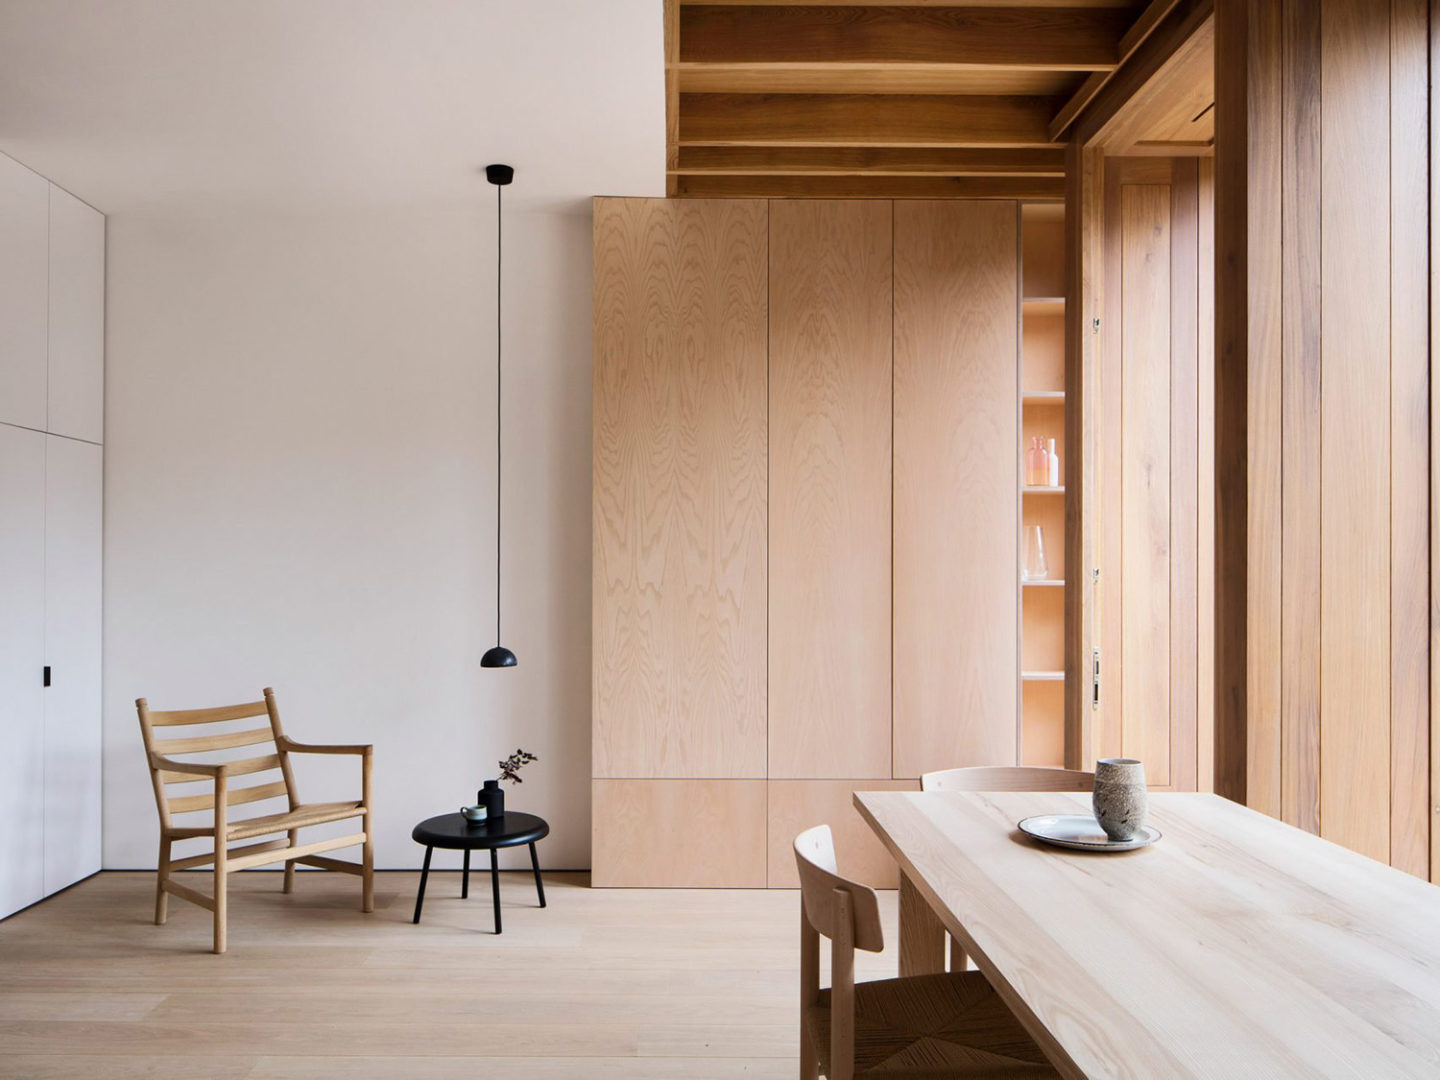 iGNANT-Architecture-O'Sullivan-Skoufoglou-Architects-Extension-London-4